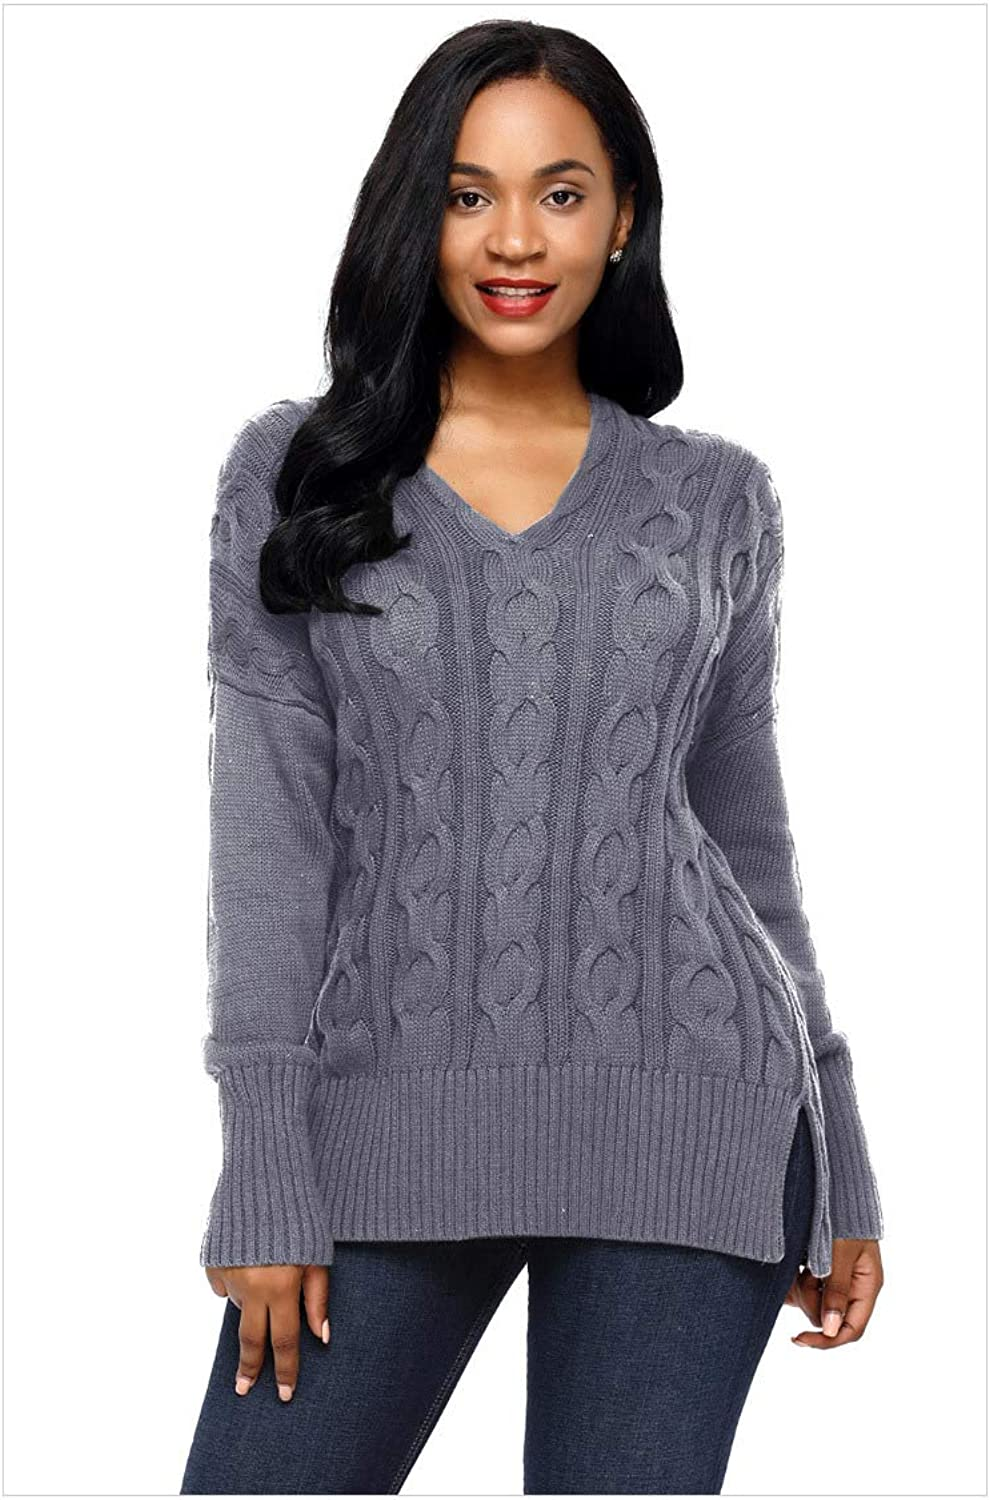 ADLISA Women's Over Size Twisted Knitted Long Sleeve Vneck Versatile Long Sweater Crop Tops